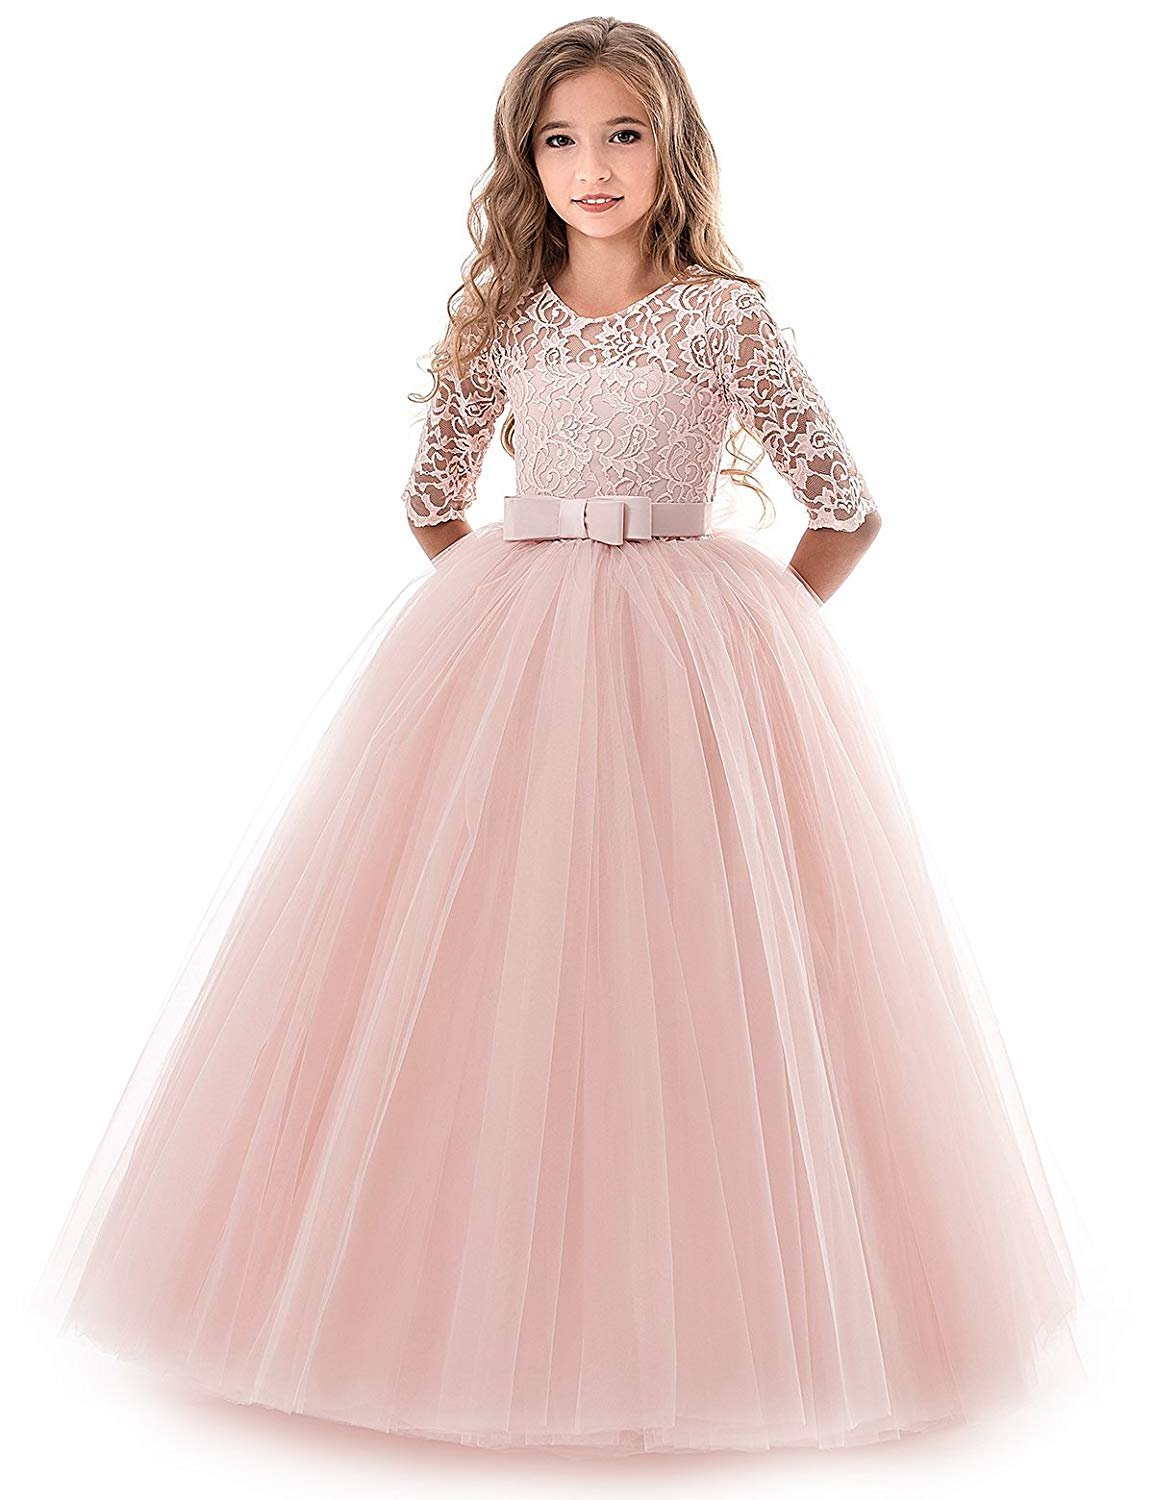 Big Girls Formal Dresses Size 9-10 Lace Princess Special Occasion Dress Long Sleeve Christmas Wedding Holiday Party Girl Dress 10 Years Elegant Tulle Dress Floor Length Princess Frocks (Pink 150)